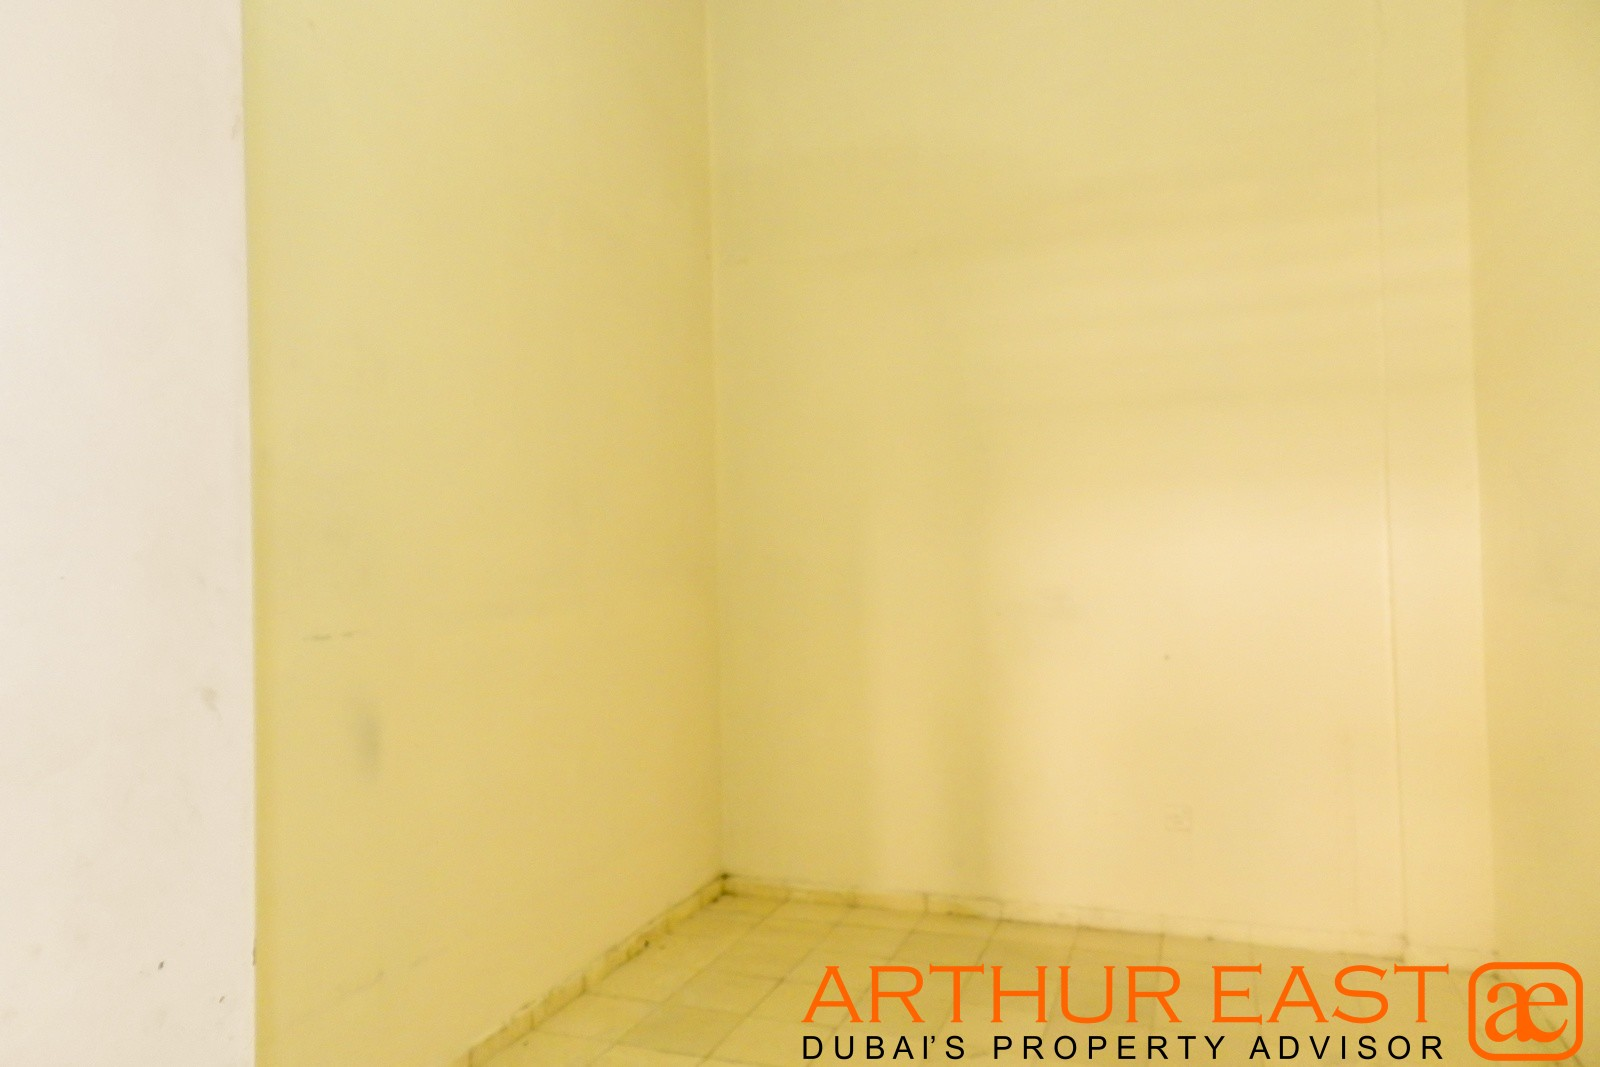 aed-3200-muhaisnah-6-person-per-room